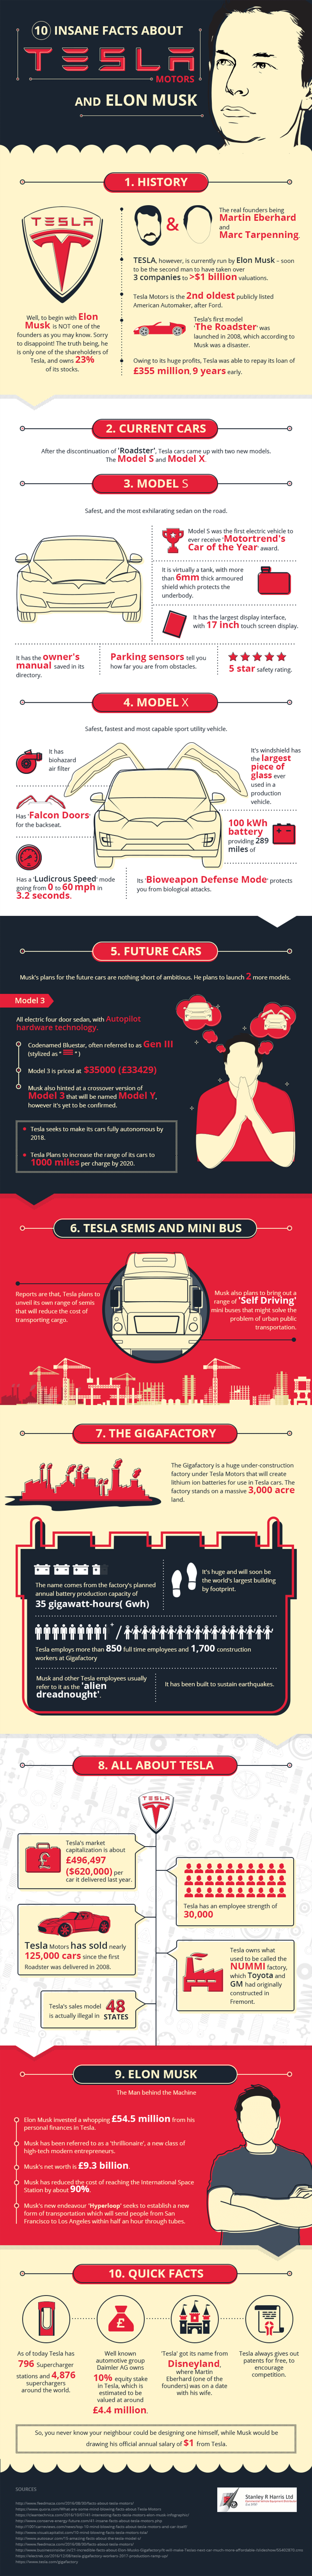 10 Facts You Didn't Know About Tesla Motors & Elon Musk